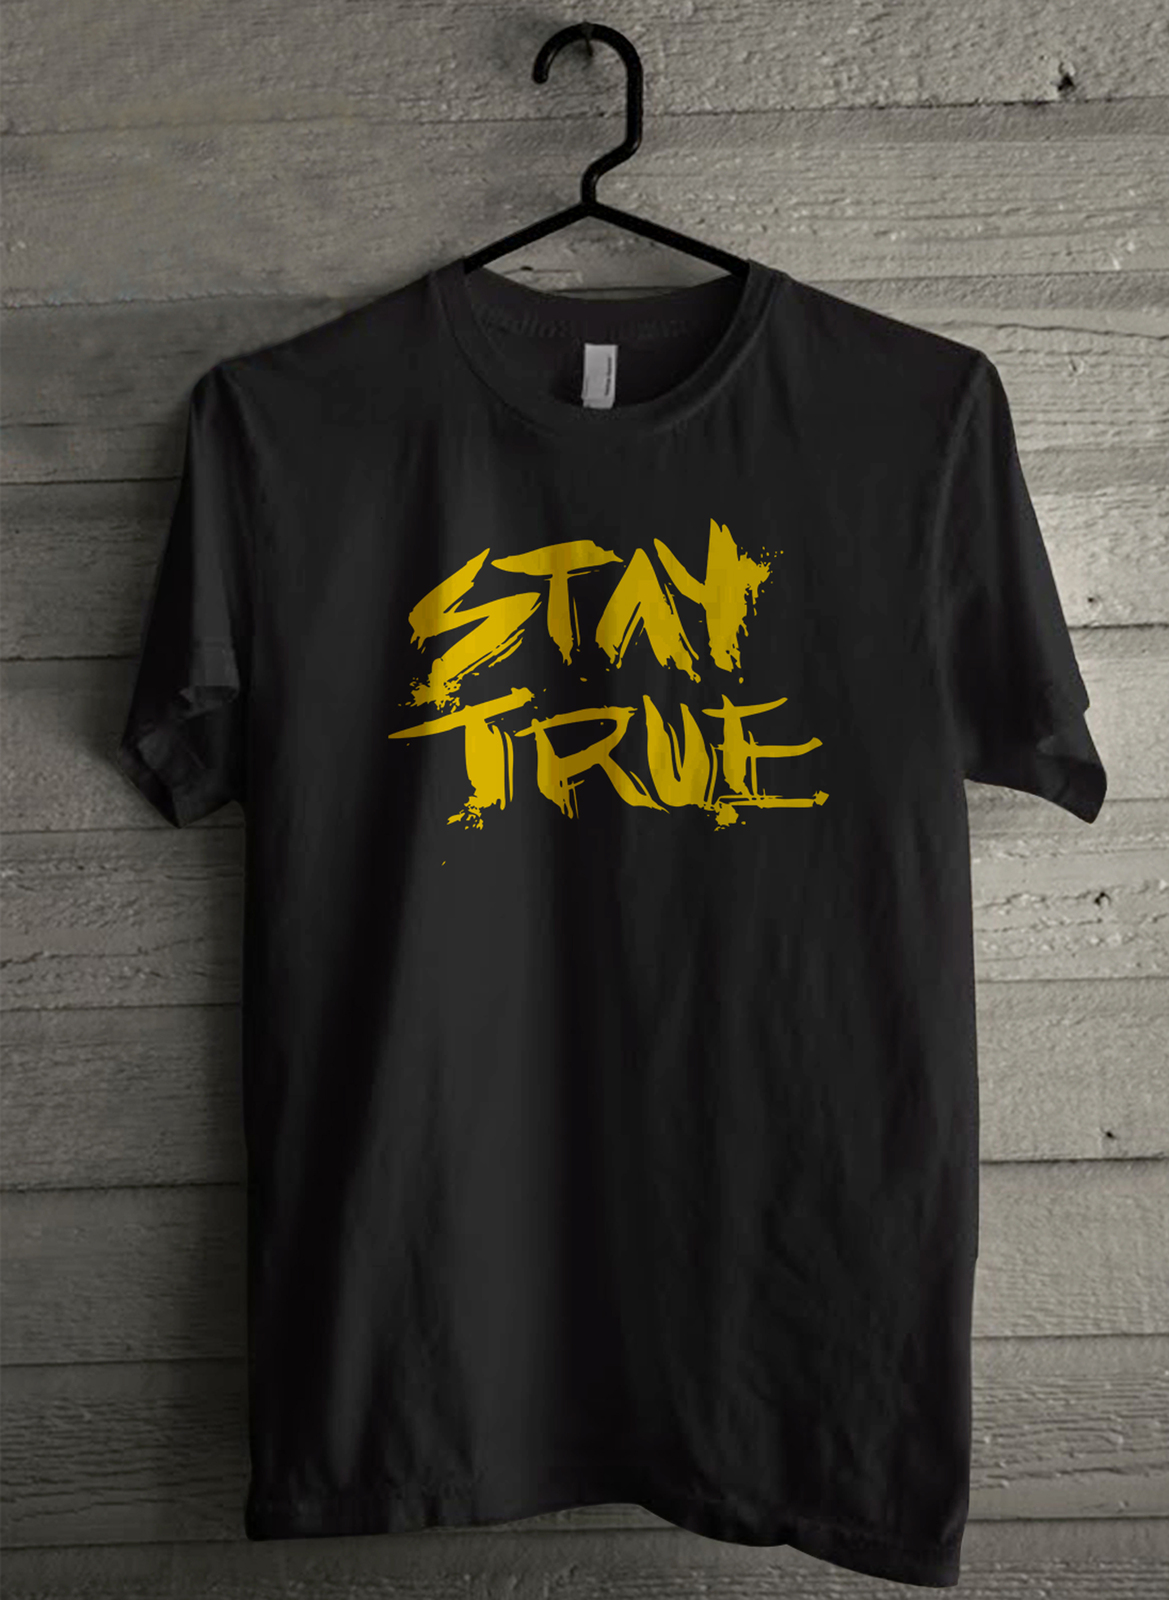 Stay True - Custom Men's T-Shirt (1228)